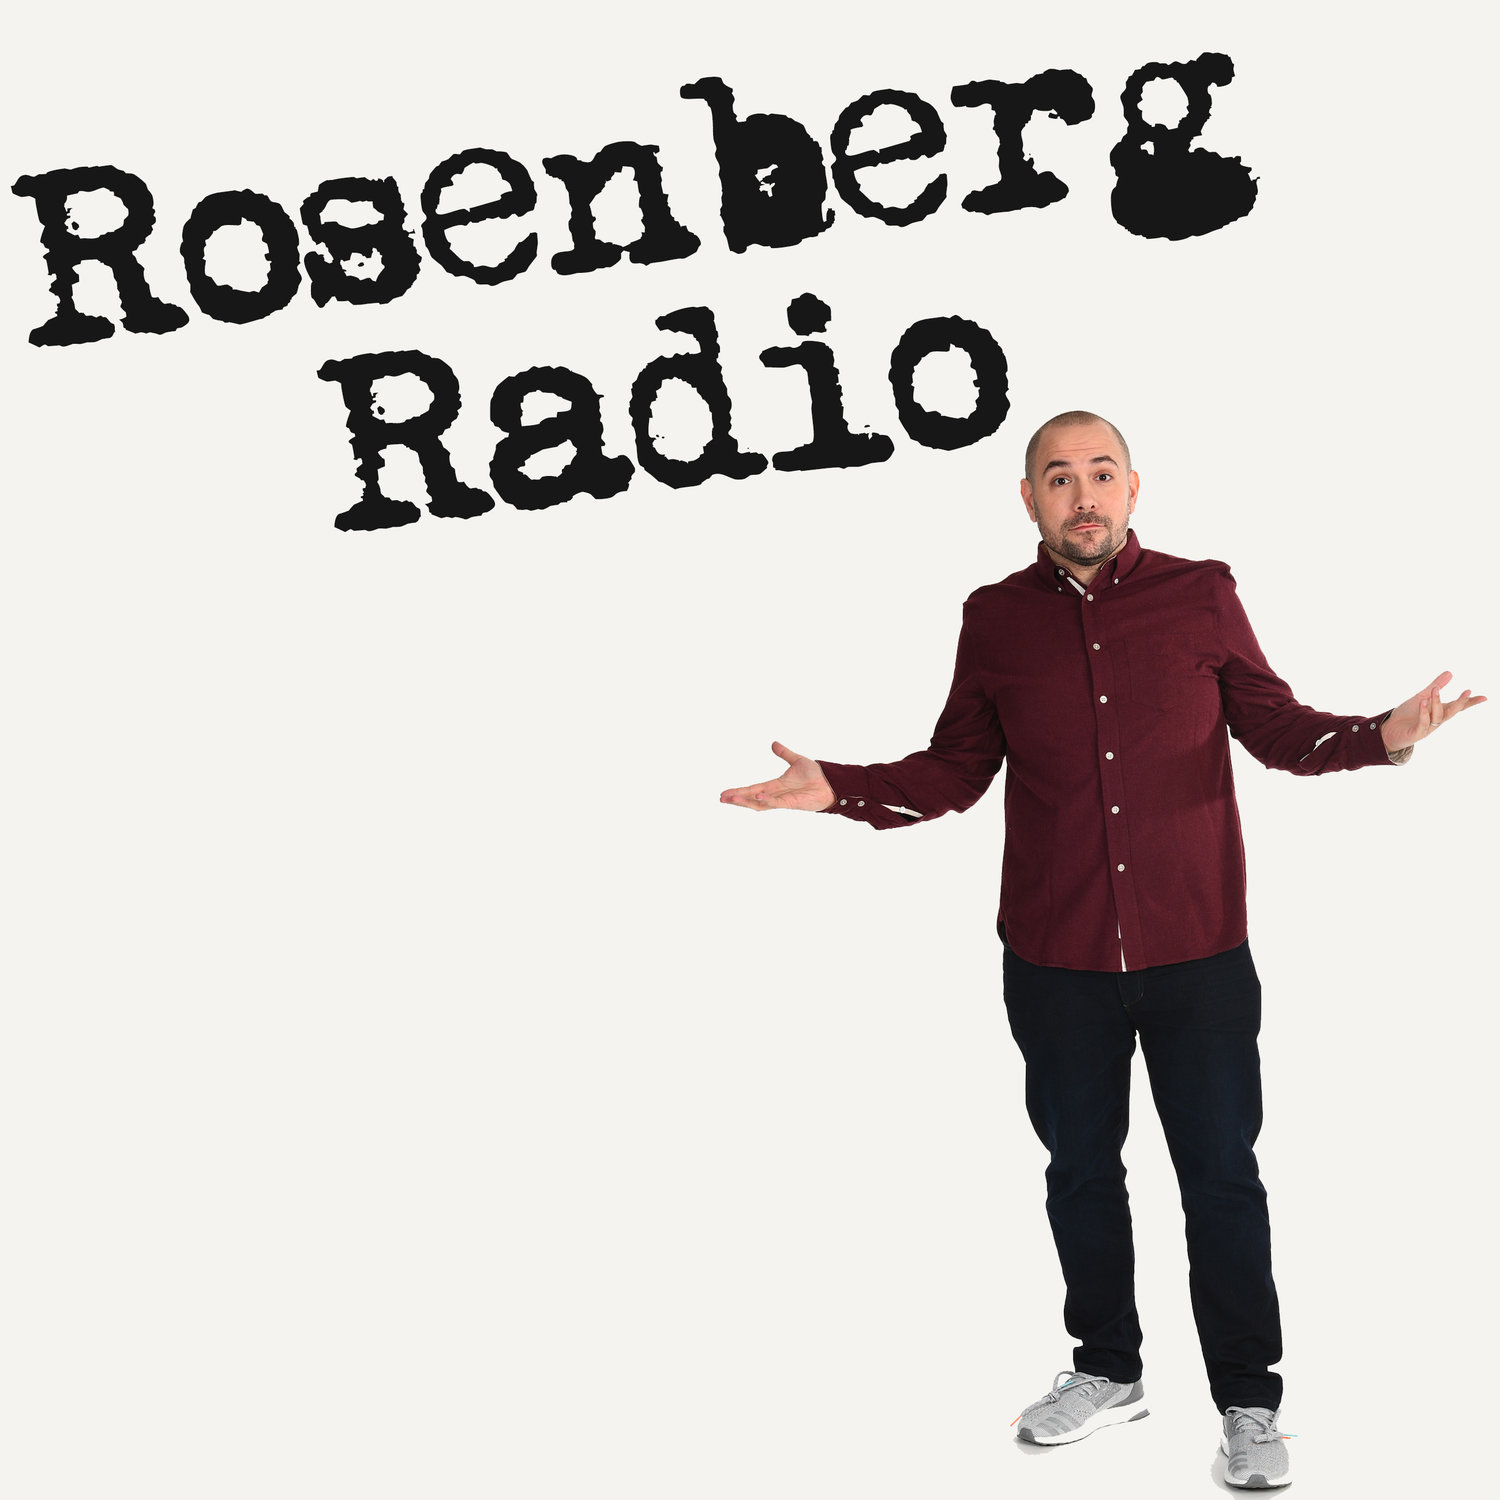 Ariel Helwani on Rosenberg Radio